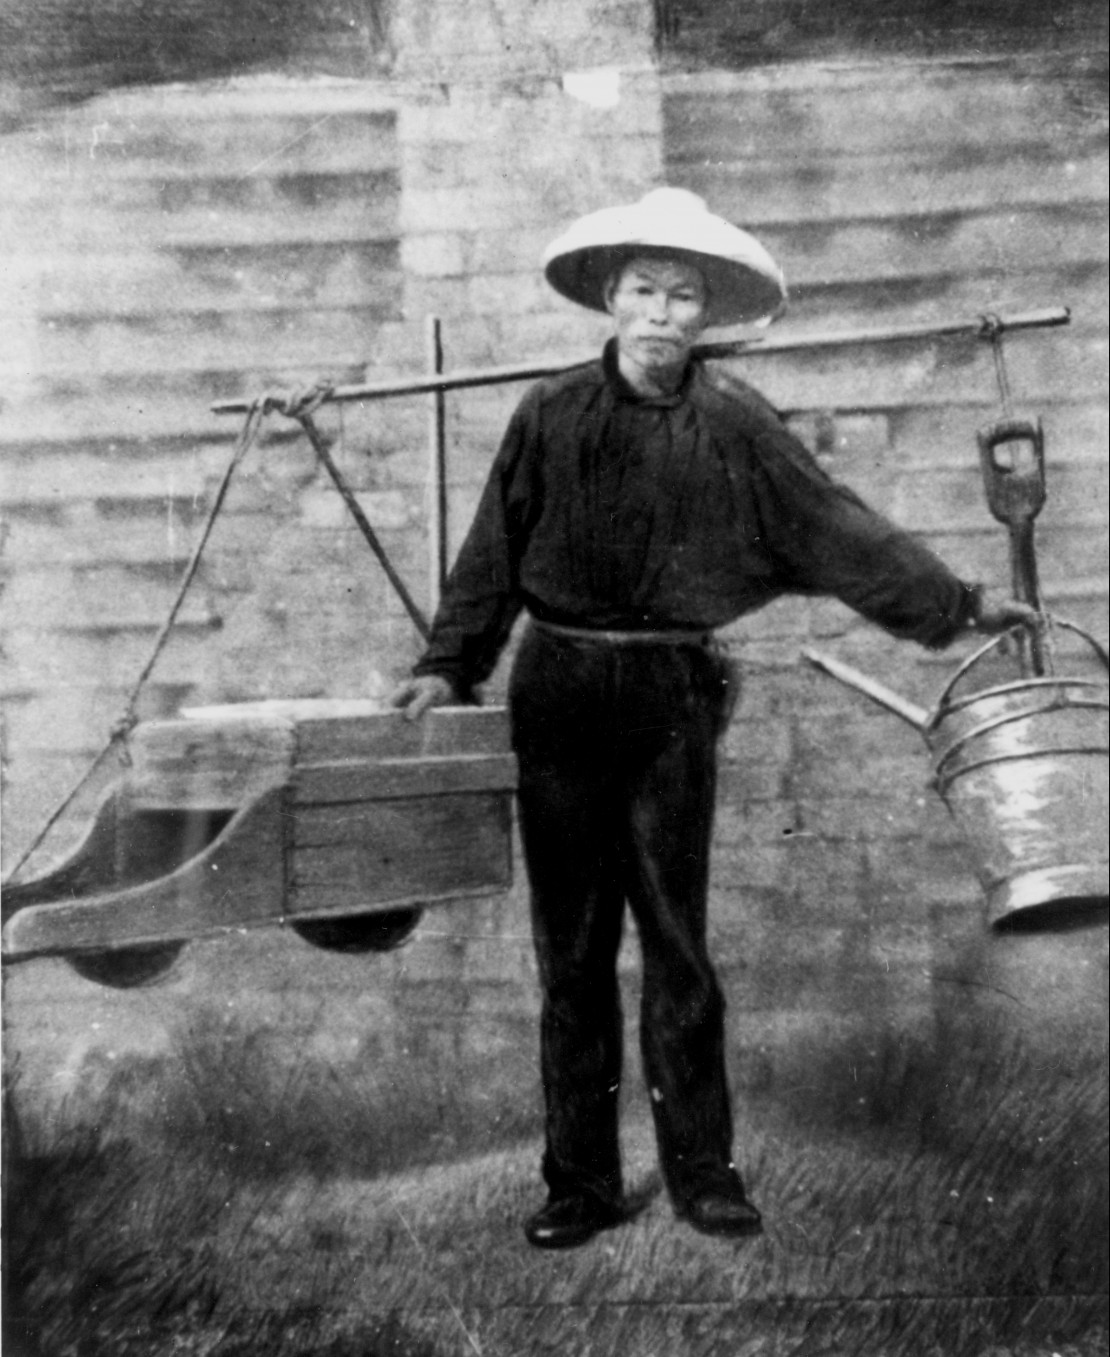 Chinese gold digger with his mining tools suspended from a yoke across his shoulders starting for work in the 1860s